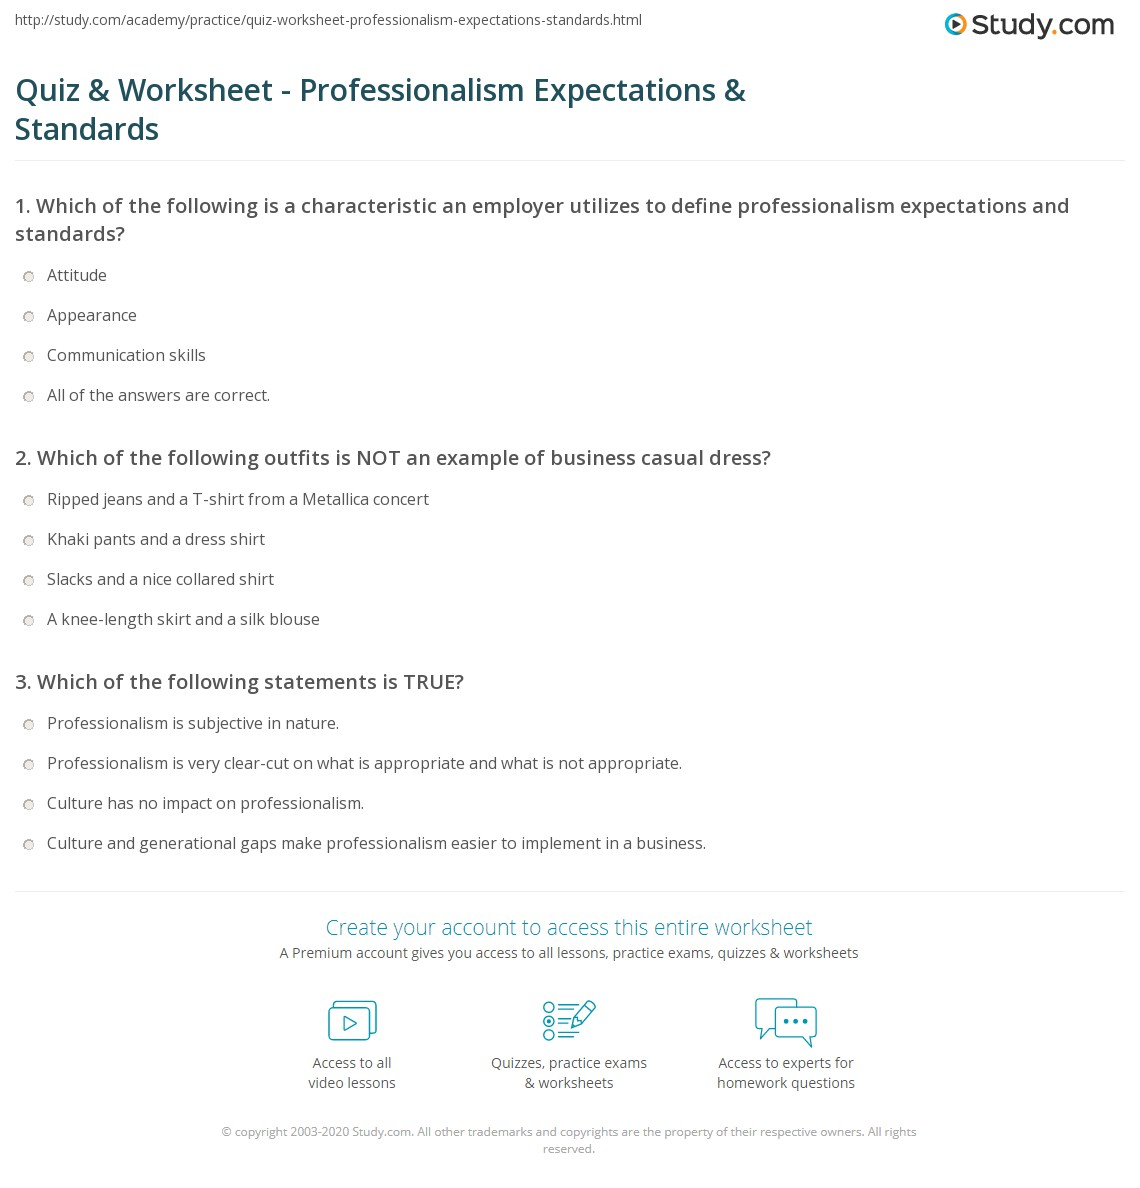 quiz worksheet professionalism expectations standards print expectations standards for professionalism at work worksheet